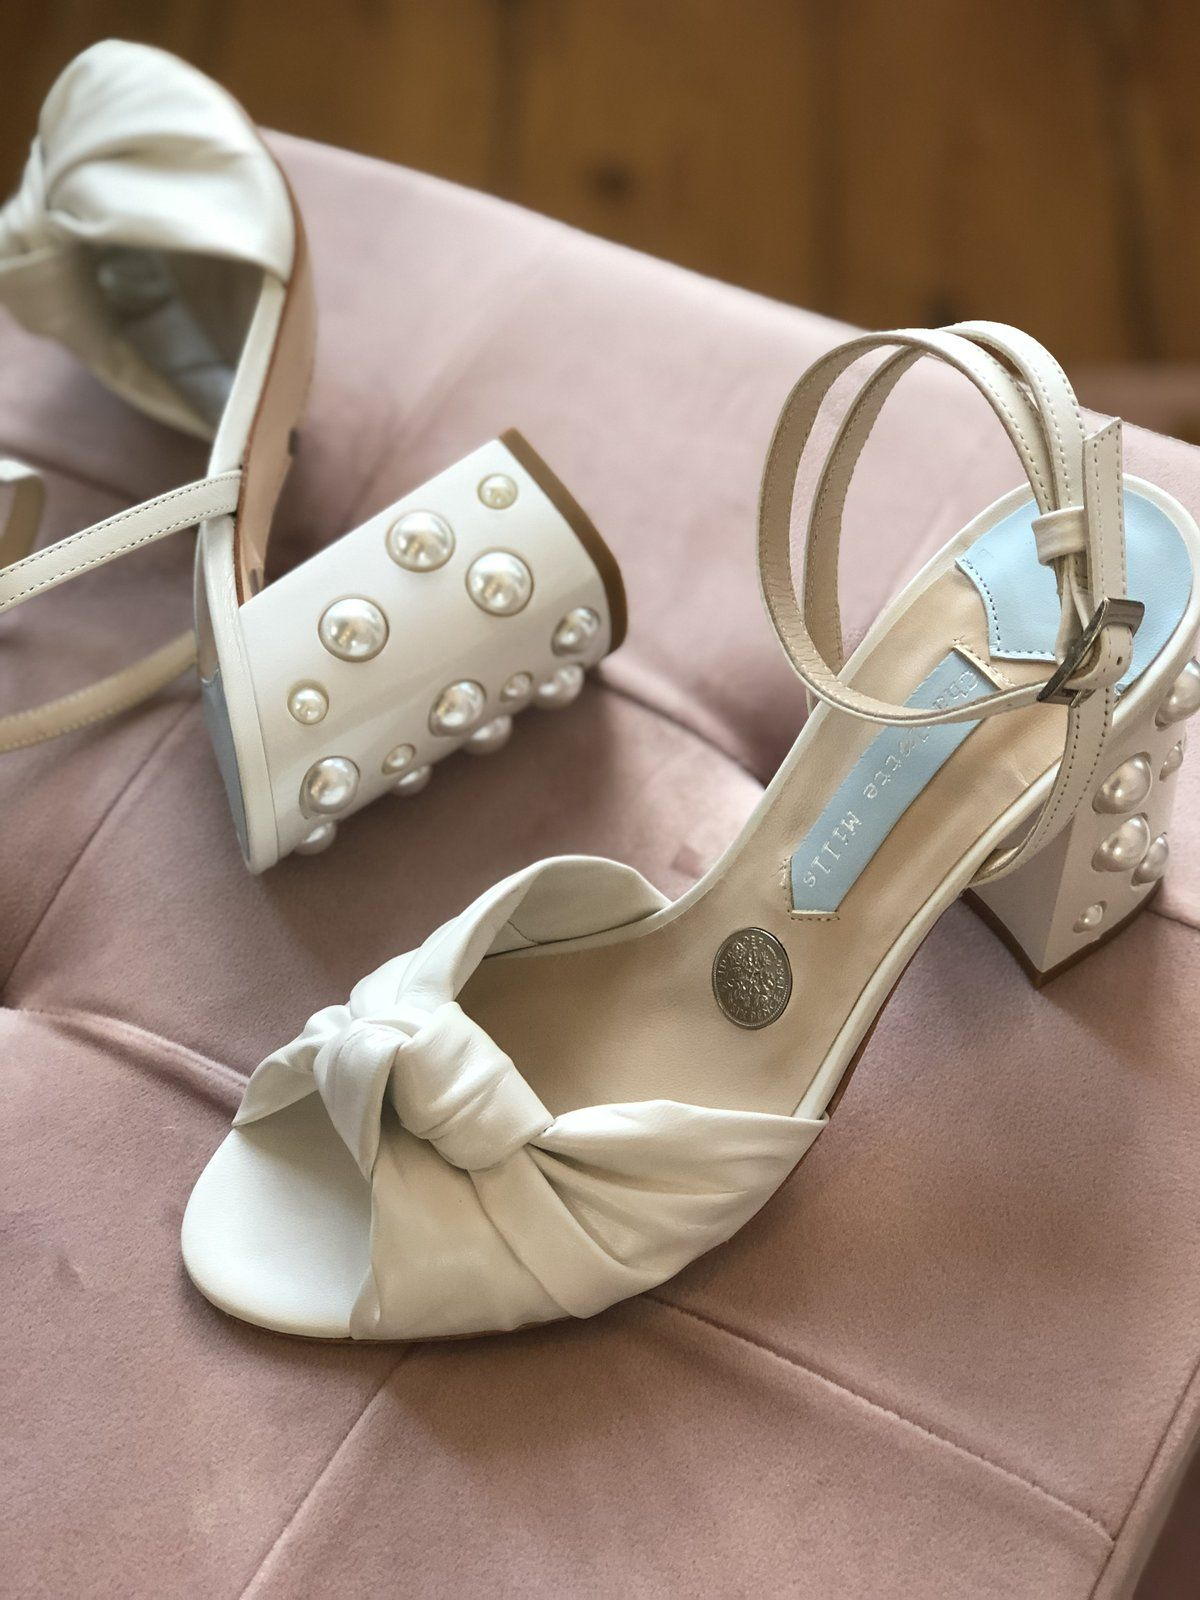 June is a striking block heel with pearls inlayed into the